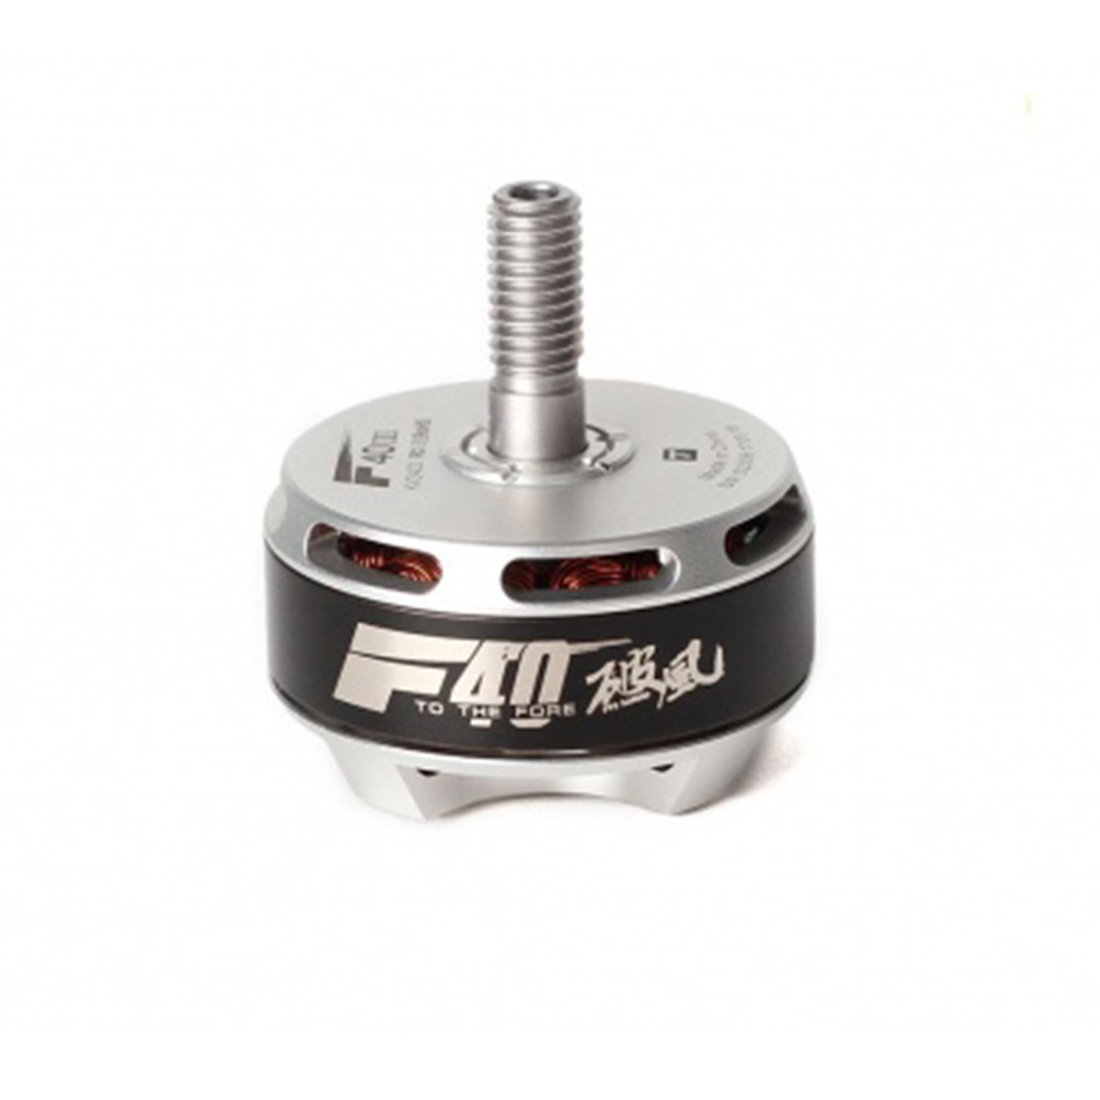 T-Motor F40 III 2306 2400KV 2600KV 2750KV Brushless Motor for 210 220 250 260 RC Models Multicopter Quadcopter FPV Drones jmt 1806 2400kv clockwise cw ccw brushless motor mini multi rotor motor for 250 across fpv 260 rc quadcopter aircraft